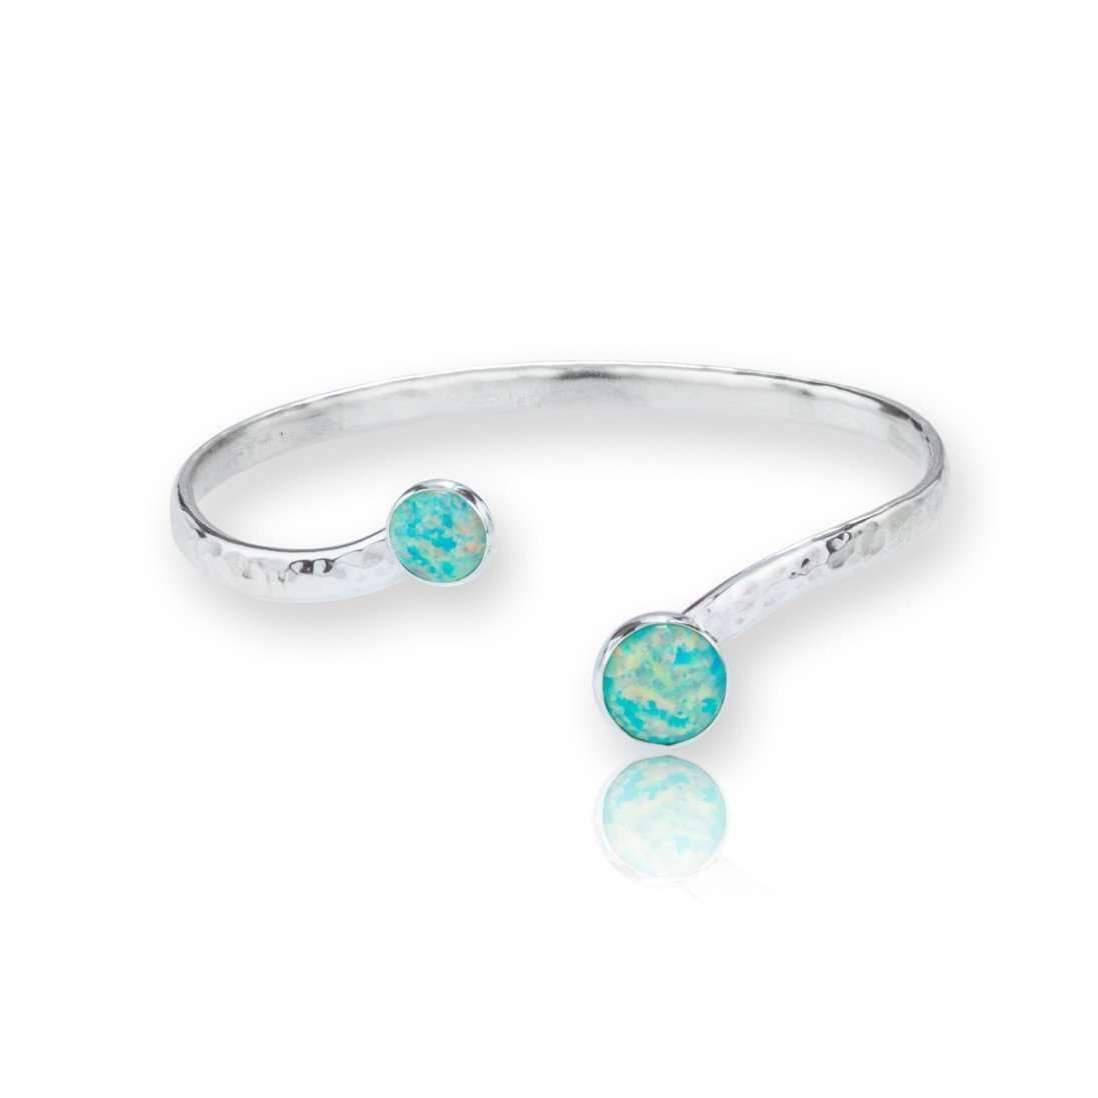 Lavan Sterling Silver Torq Bangle With Green Opals